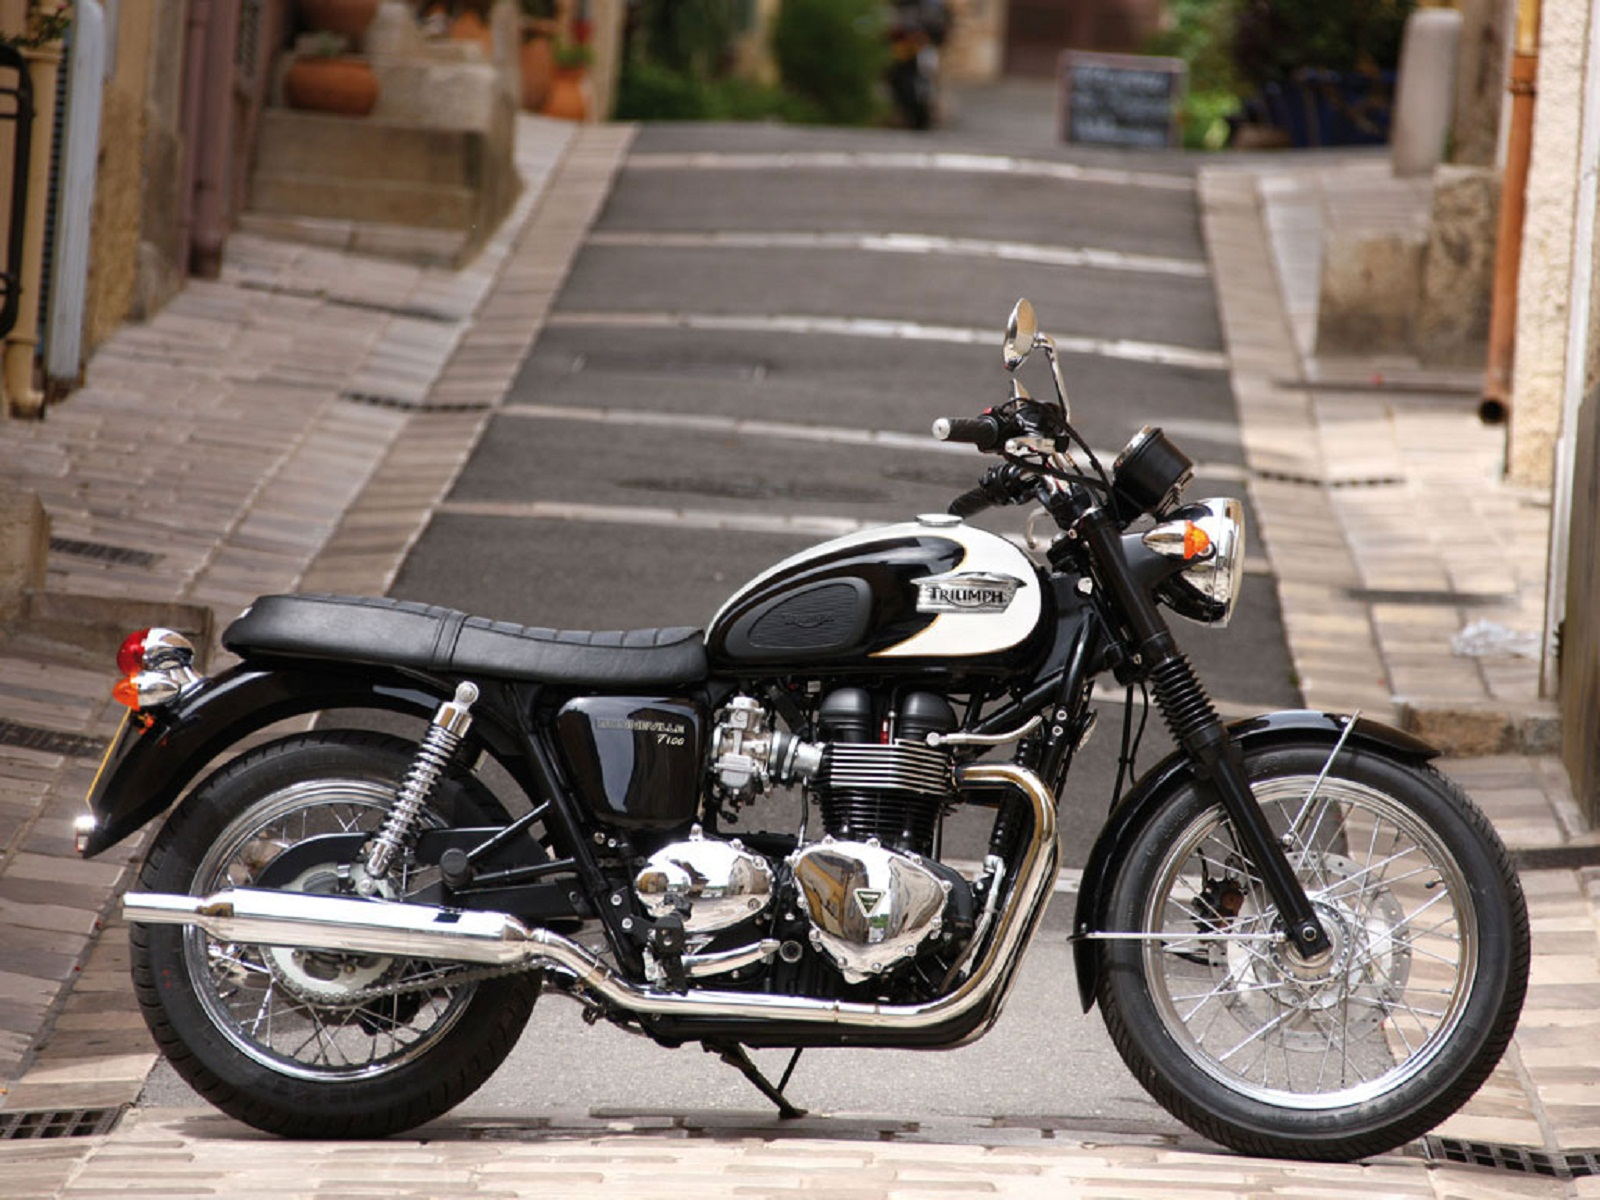 2012 Triumph Bonneville Top Speed